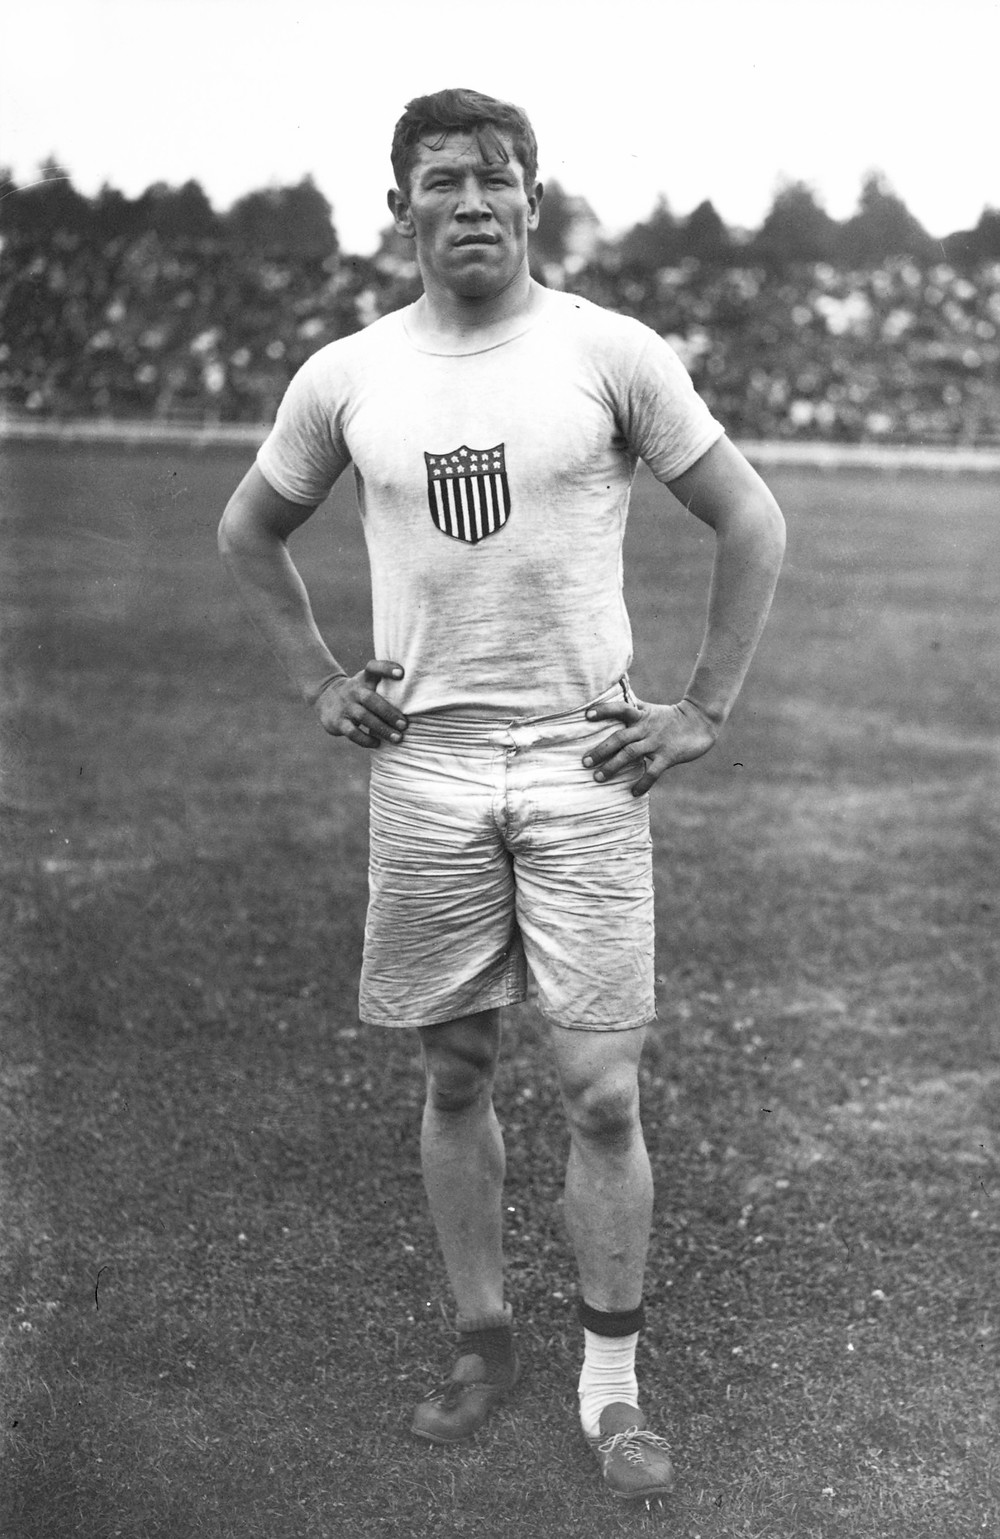 Jim Thorpe at the 1912 Summer Olympics in Stockholm. Public Domain.